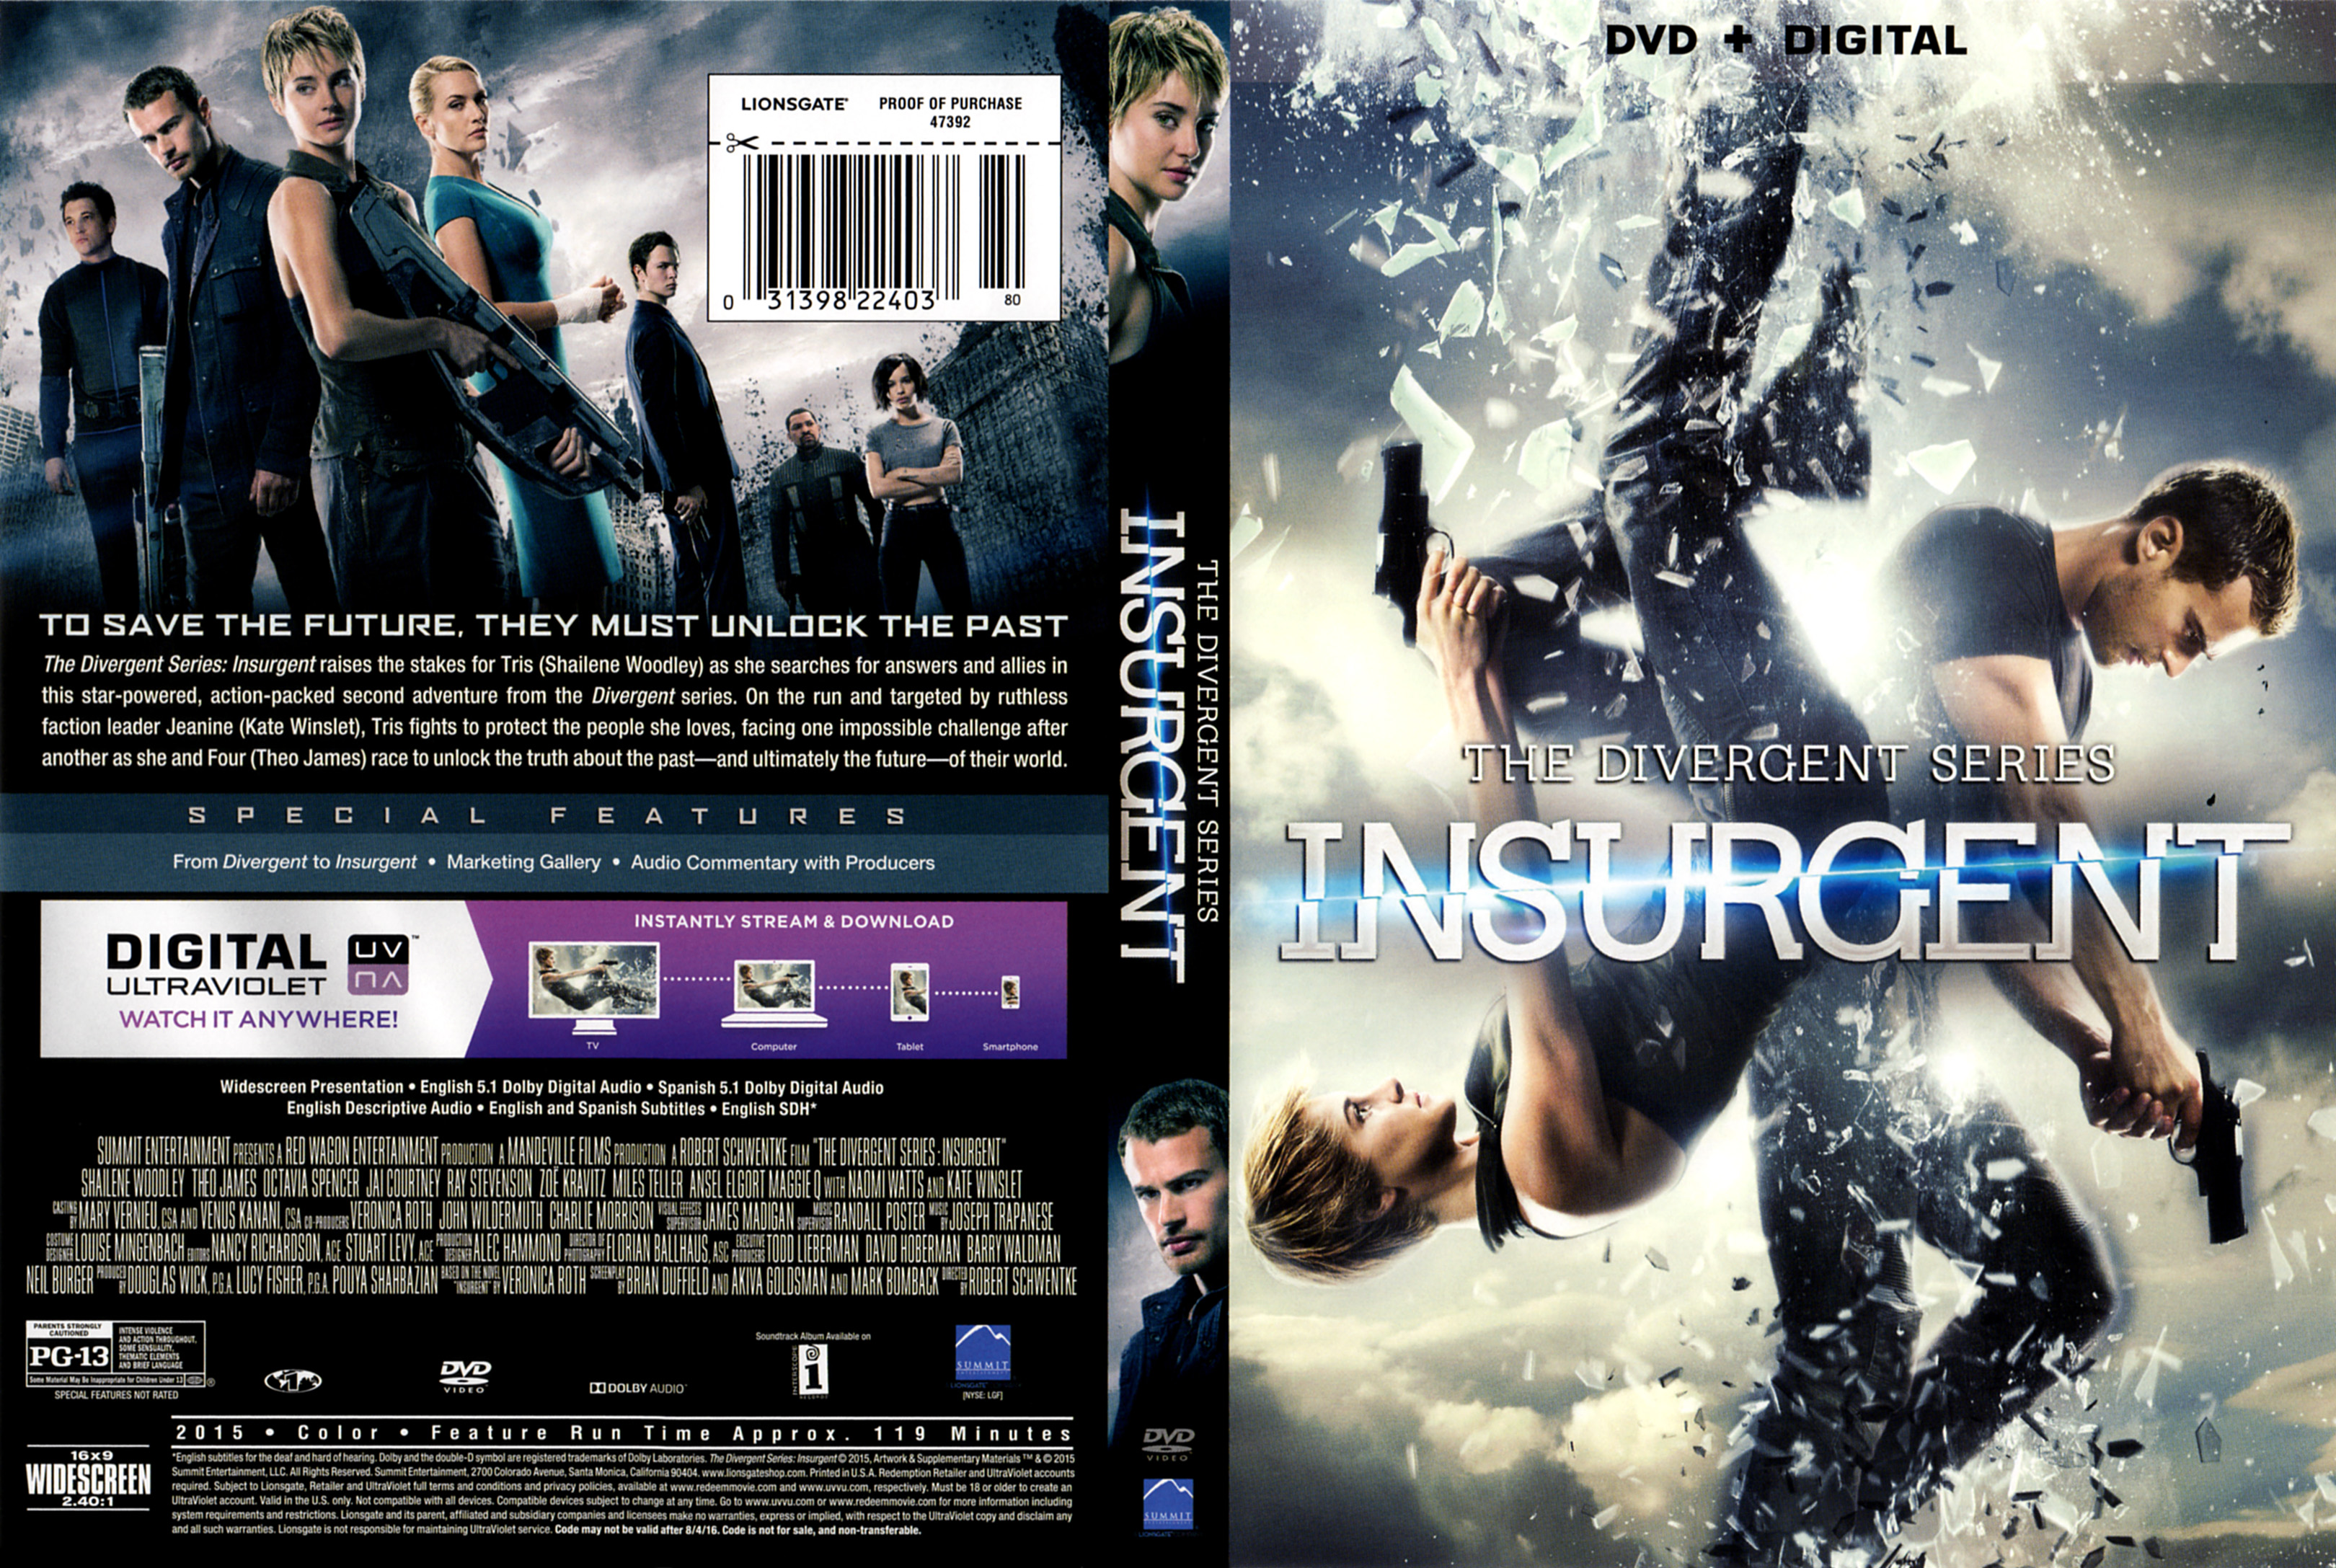 insurgent front dvd covers cover century over 500 000 album